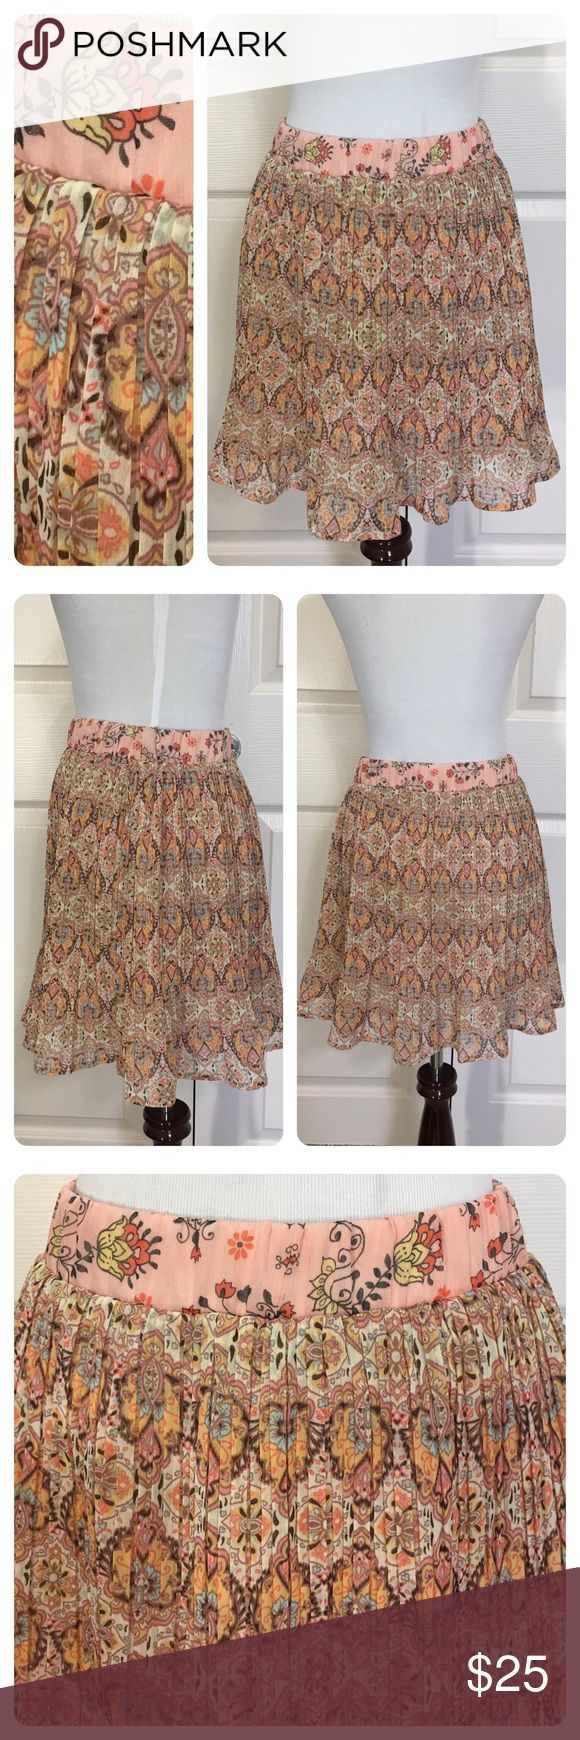 American Rag pleated skirt. Boho chic American Rag pleated skirt.  Elastic waist. Full pleats. Great boho look. Fun with boots, sandals or converse high tops! American Rag Skirts